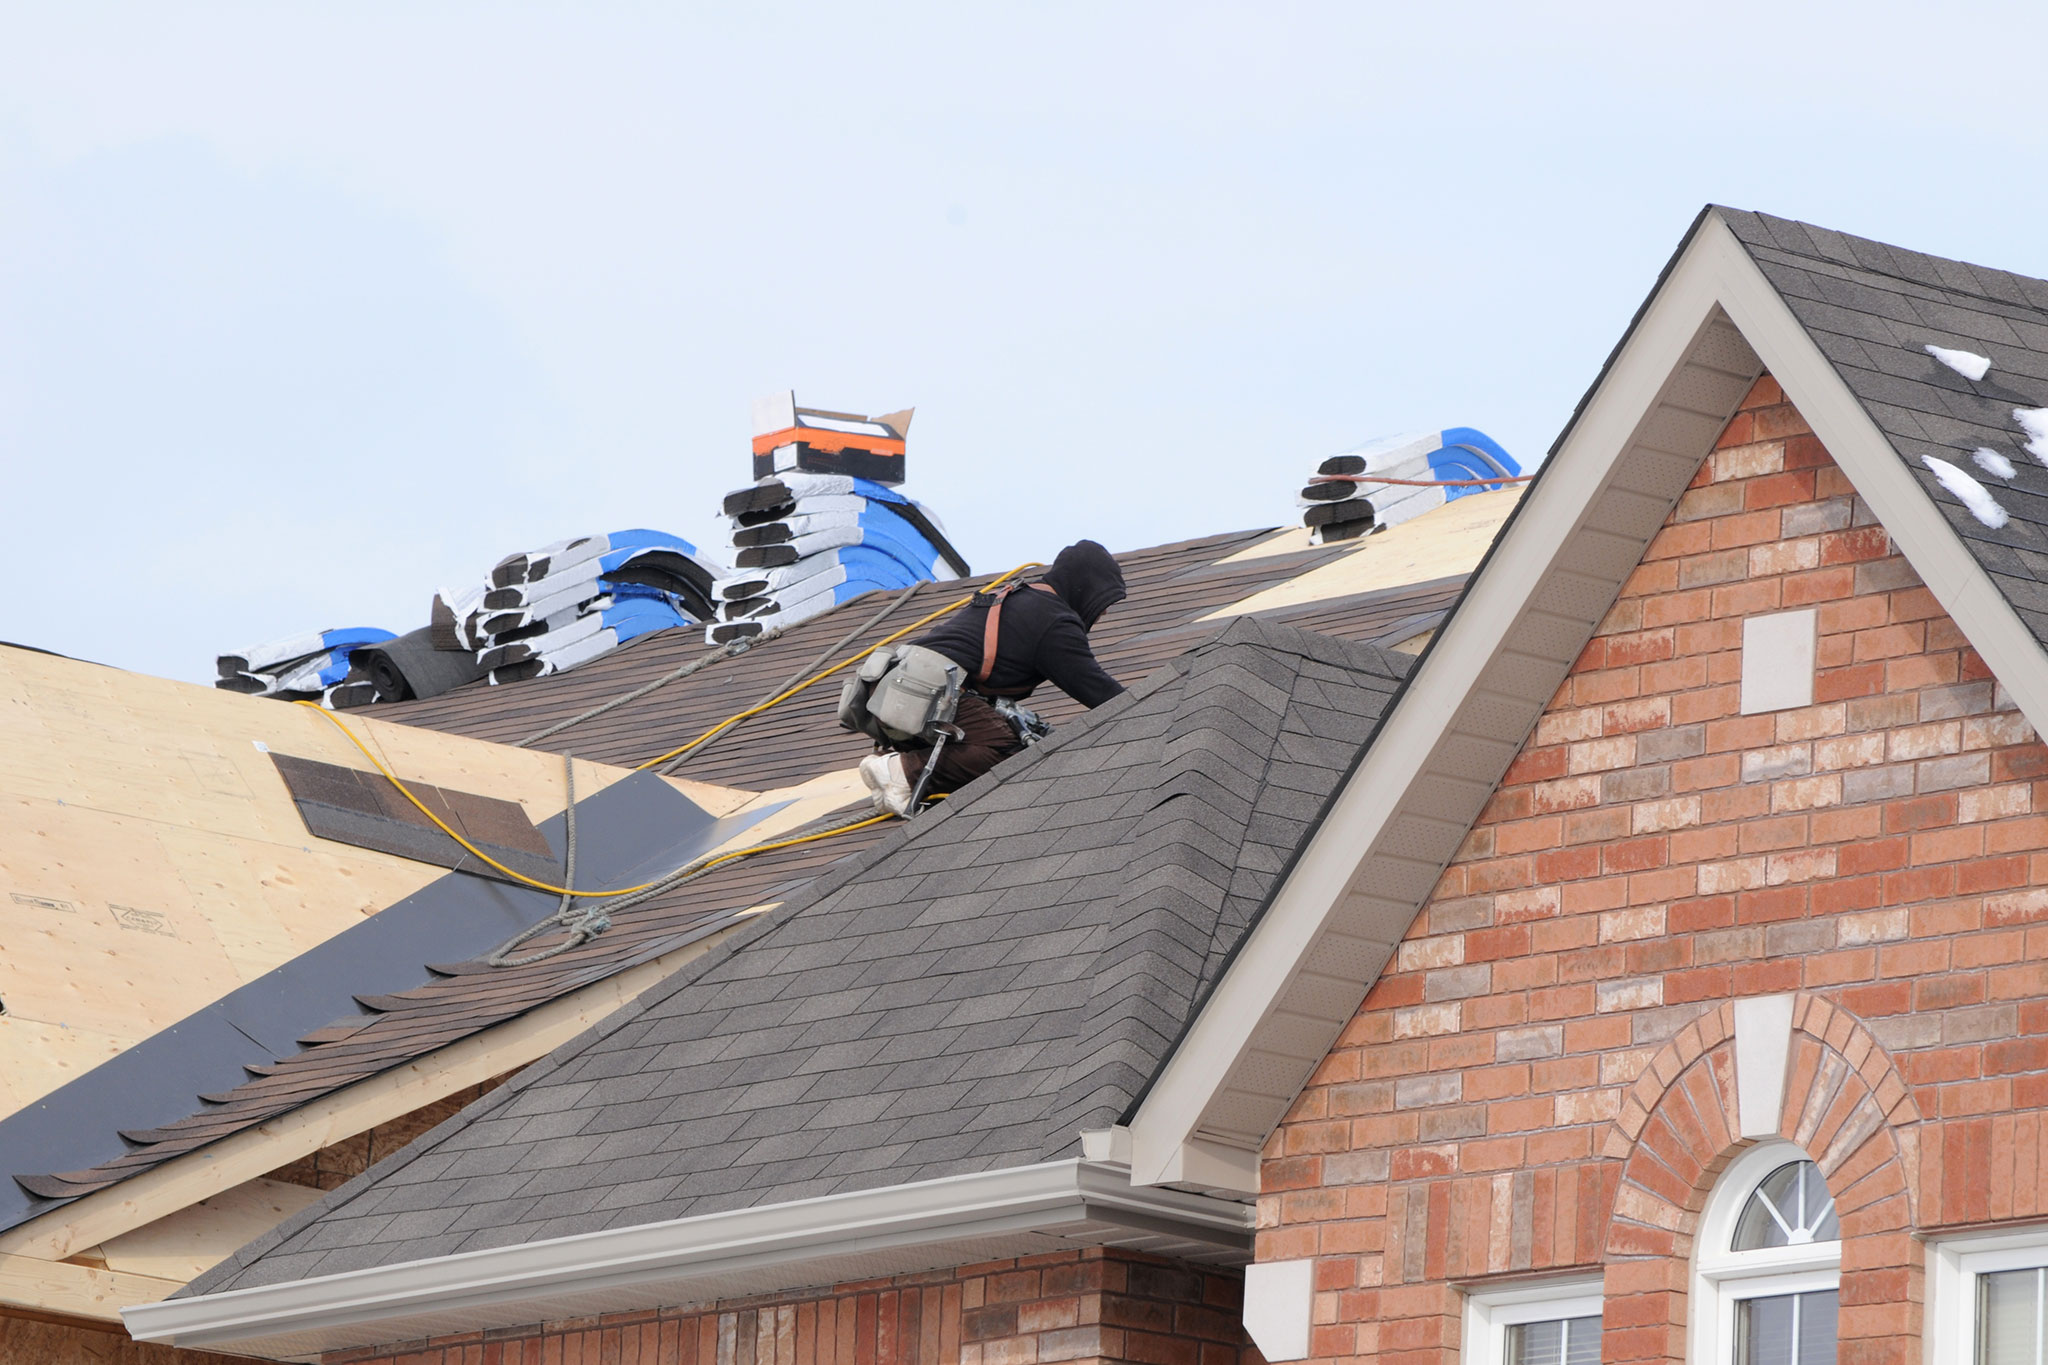 roofer on the job in warm clothing